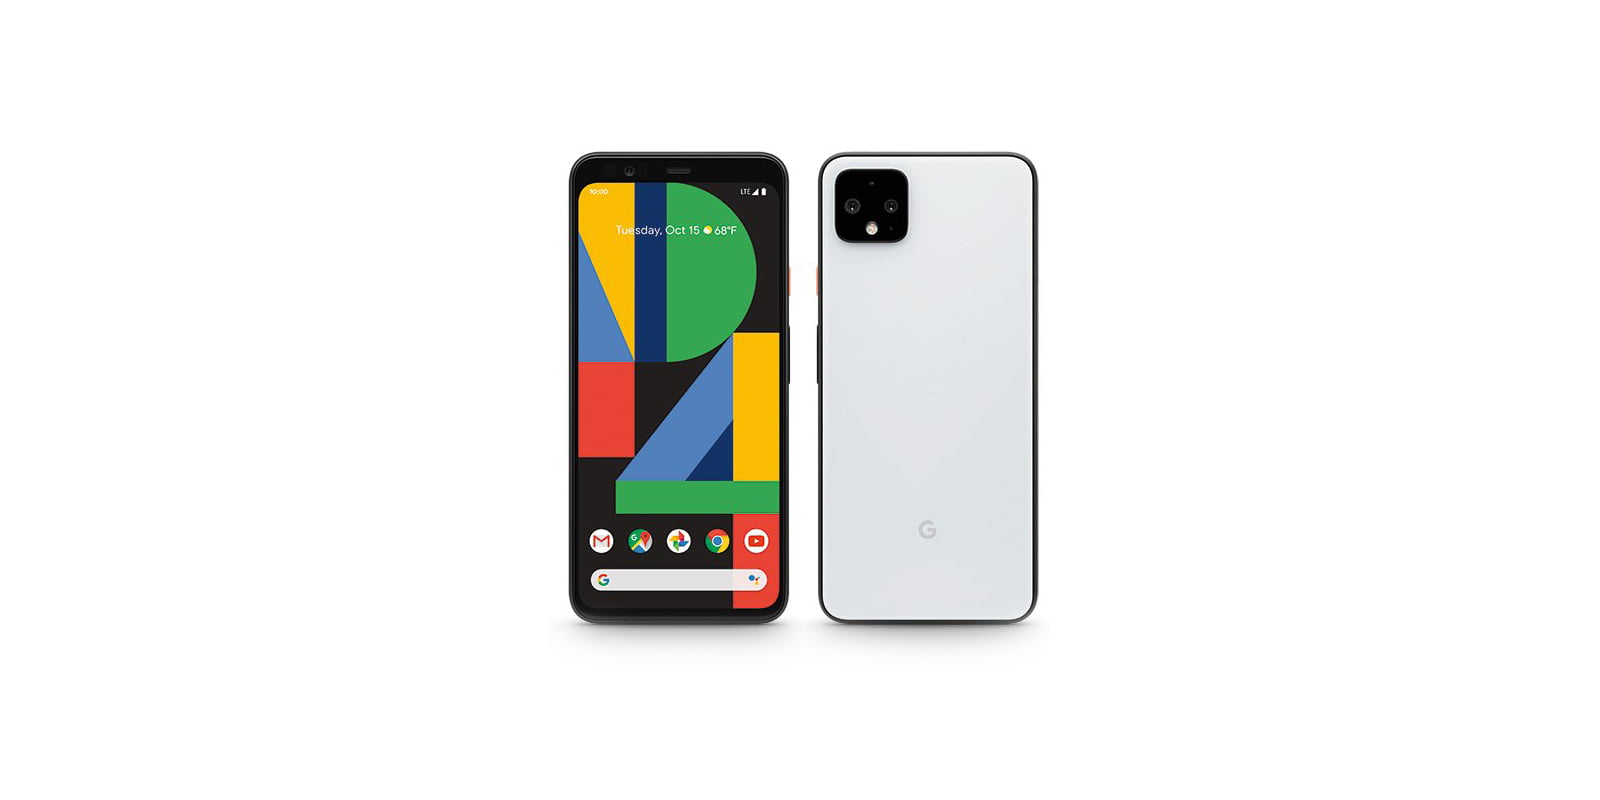 Pixel 4 phone in Clearly White Color